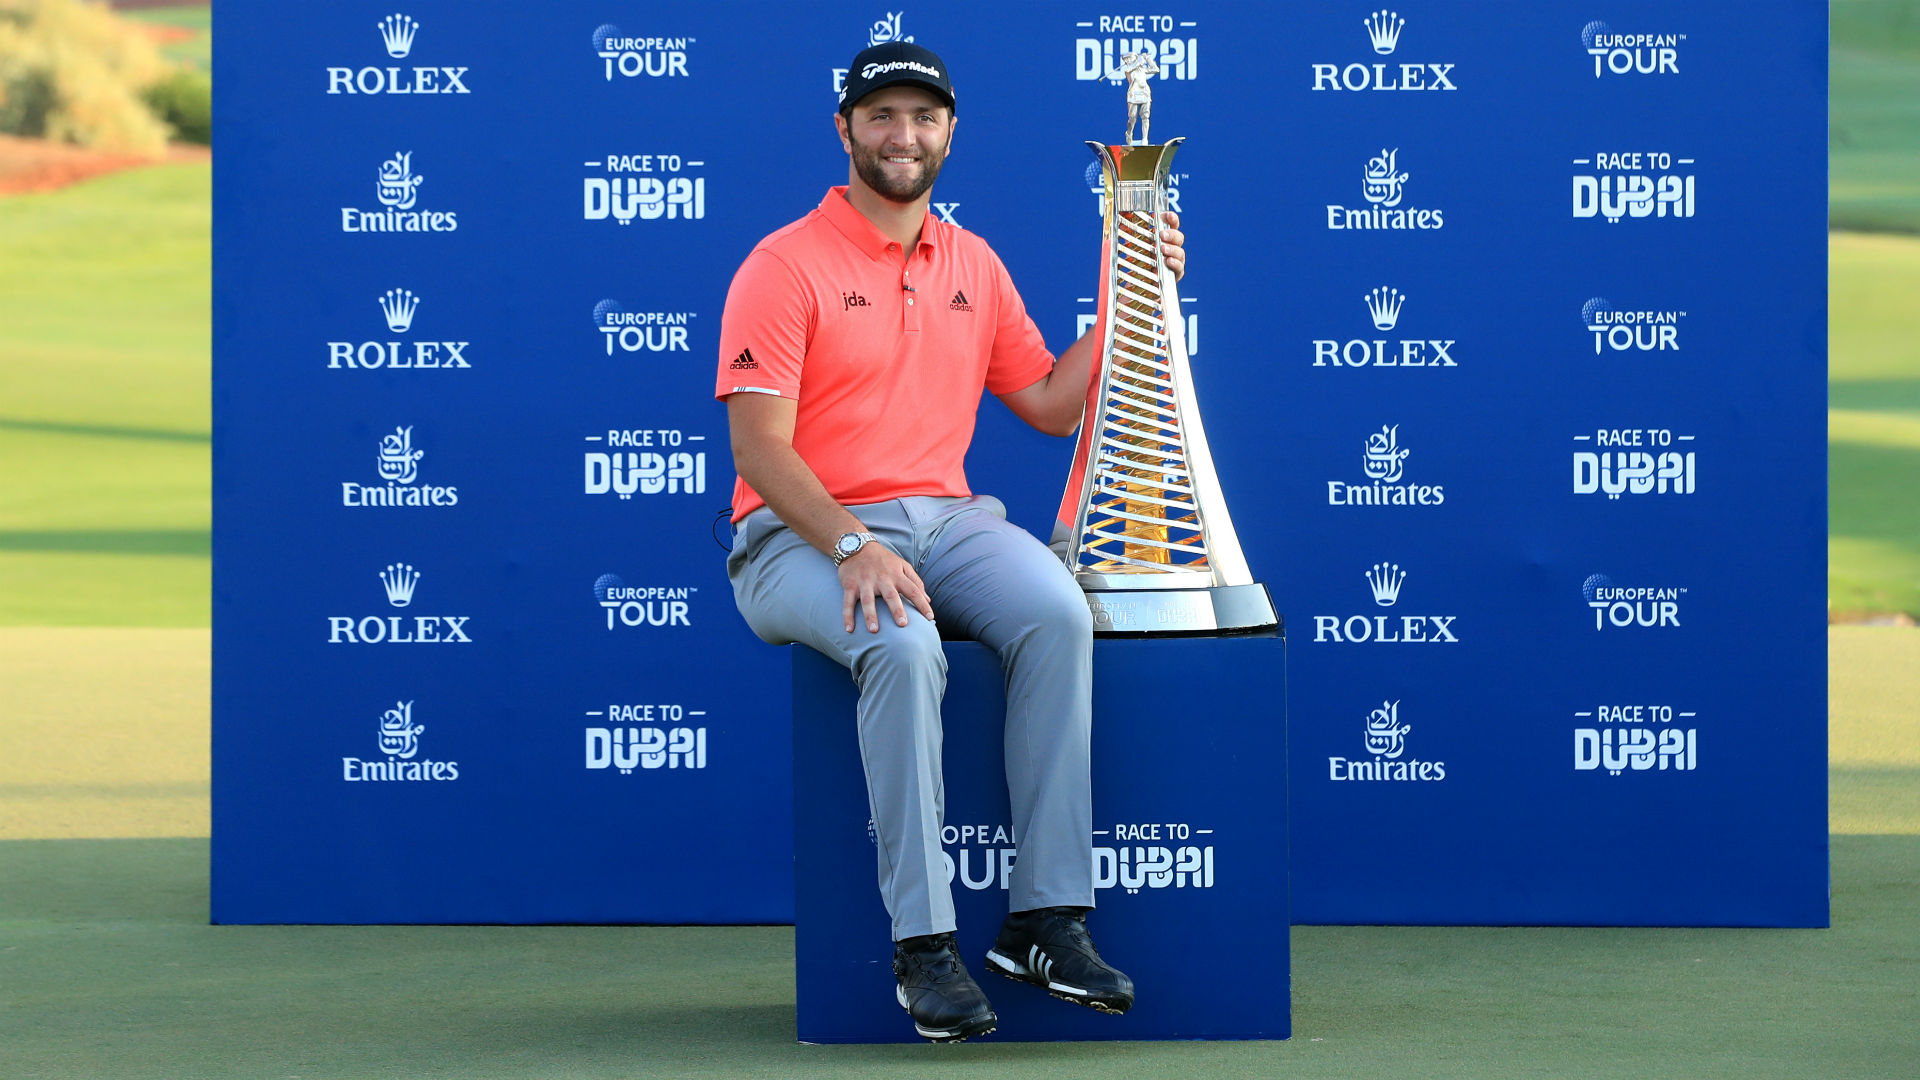 Rahm holds off fast-finishing Fleetwood to double up in Dubai